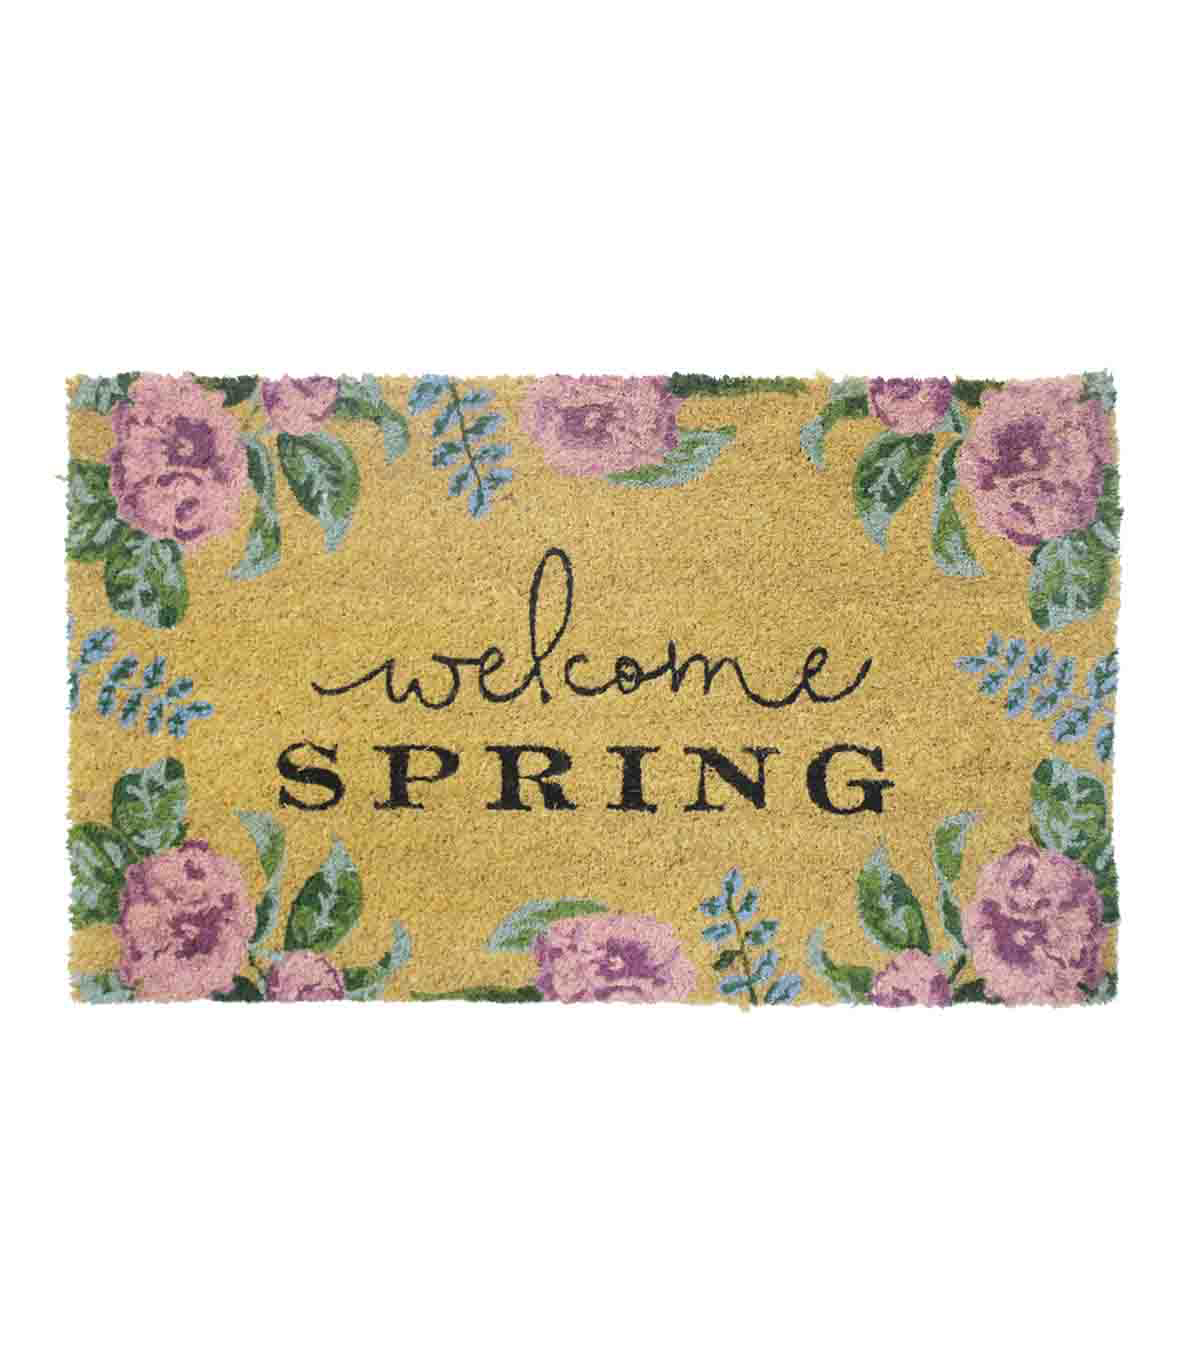 In the Garden Tufted Coir Mat-Welcome Spring & Floral on Natural